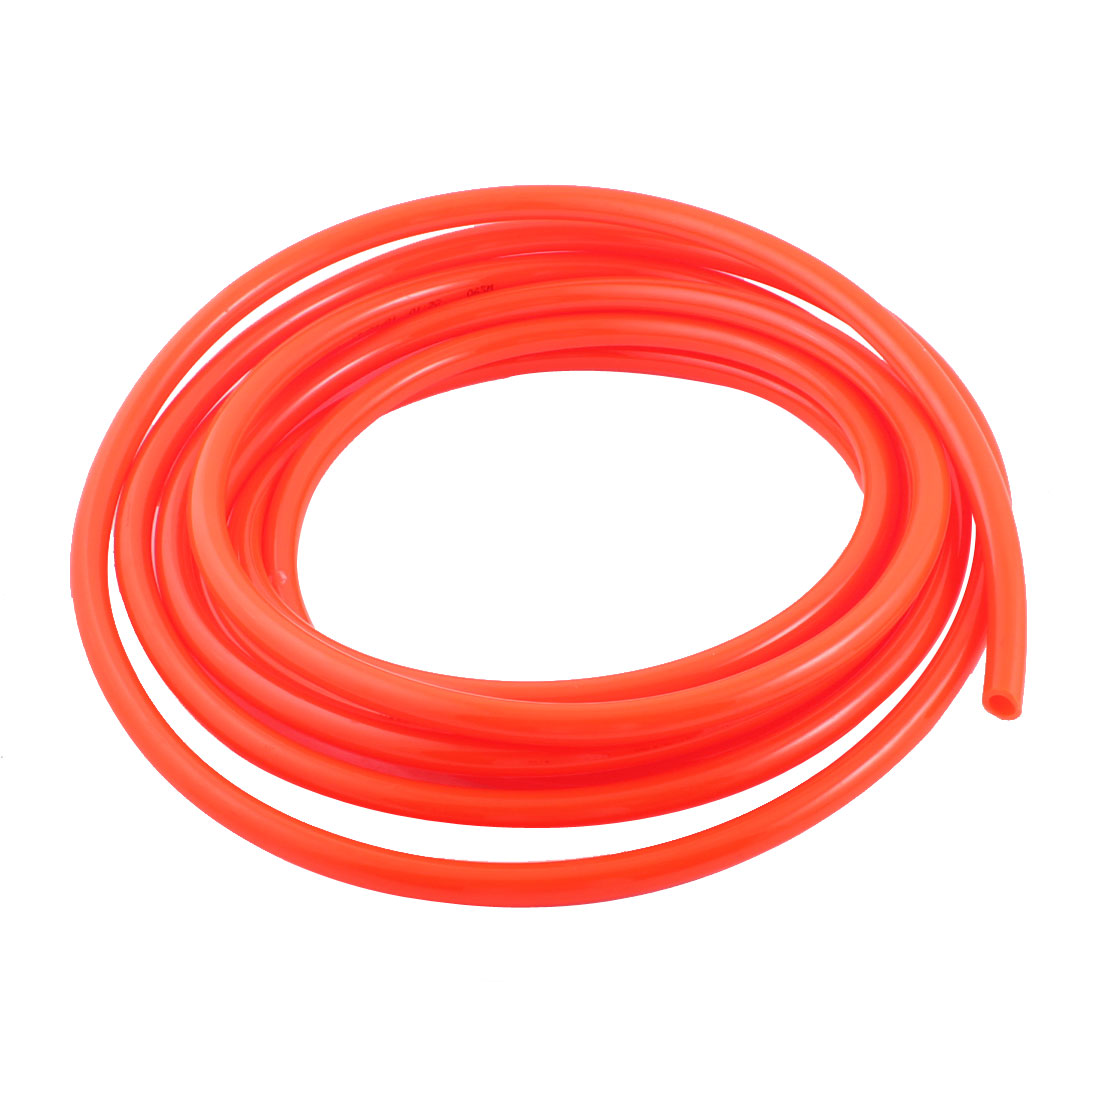 UXCELL 12Mm Od 8Mm Inner Dia Air Compressor Pu Tube Hose 5.8M 19Ft For Pneumatics uxcell 16ft 8mm inner dia clear plastic pvc hose pipe tube for tank air pump aquarium